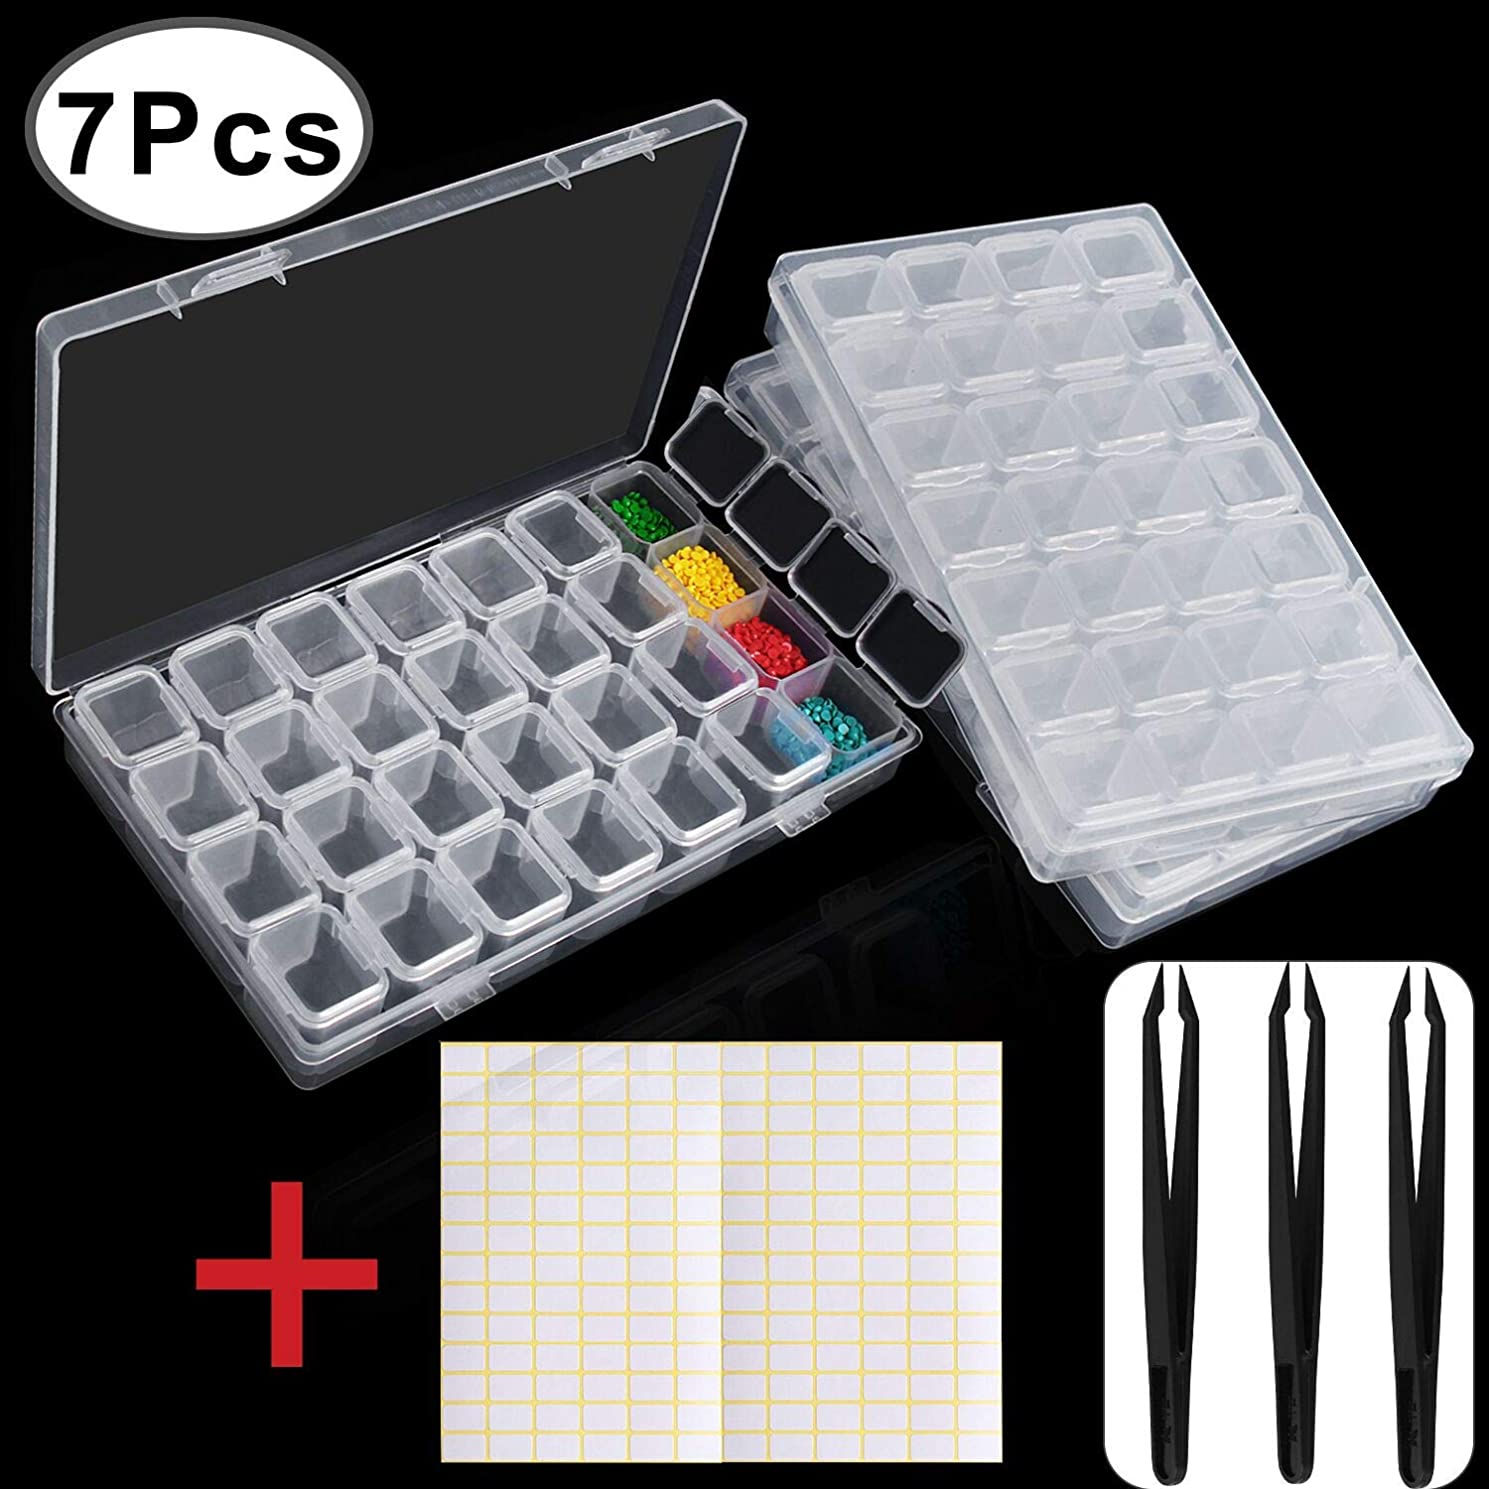 Outee 3 Pack 28 Grids Diamond Painting Box Storage 5D Diamond Painting Accessories Storage Box for Diamond Embroidery with 3 Pack Tweezers and 168 Pieces Craft Label Marker Sticker